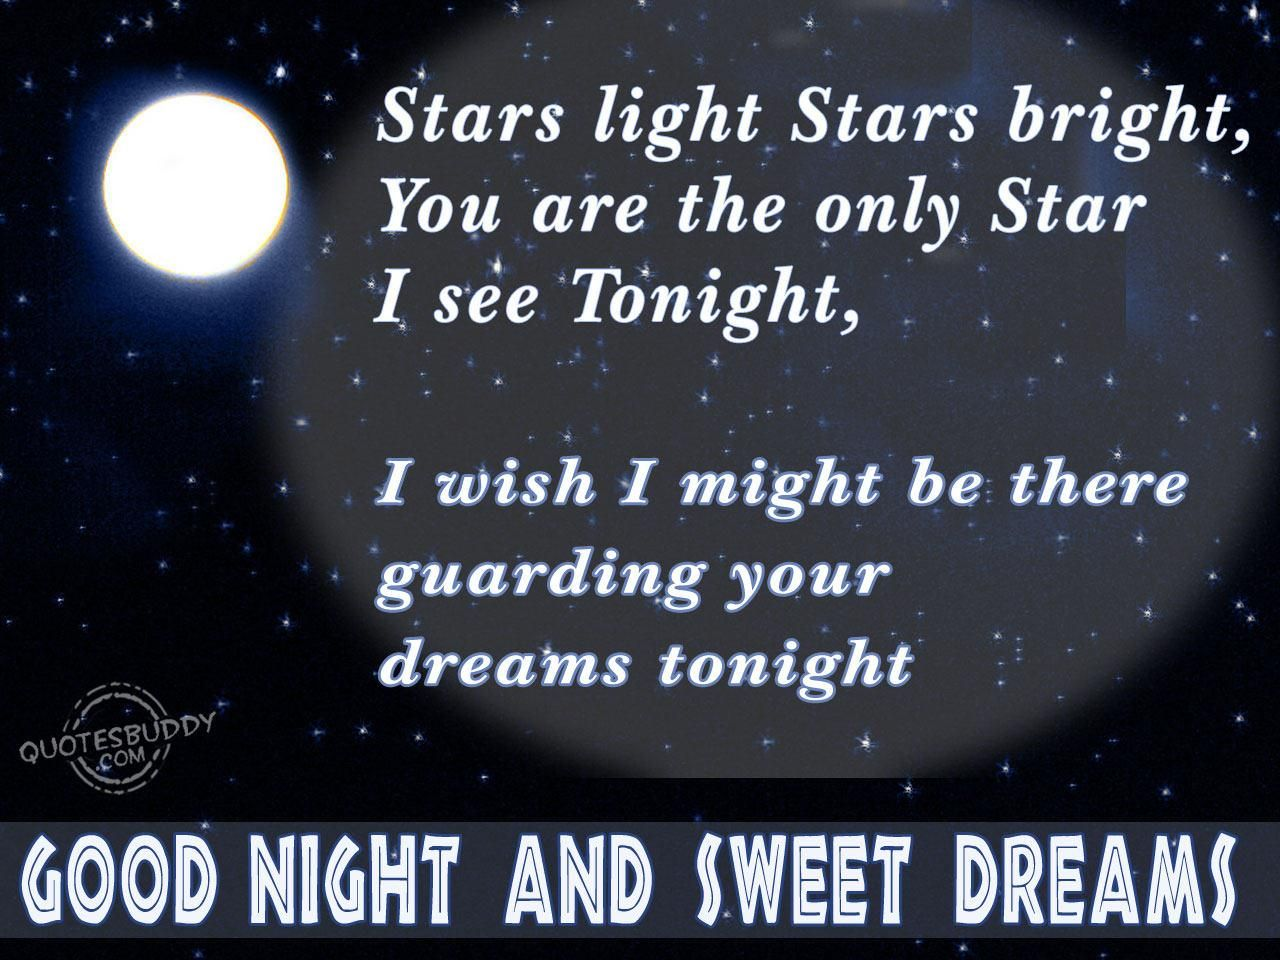 The concept of Good night quotes are cute and sweet When one receives a such a sweet dream quote they feel loved and appreciated